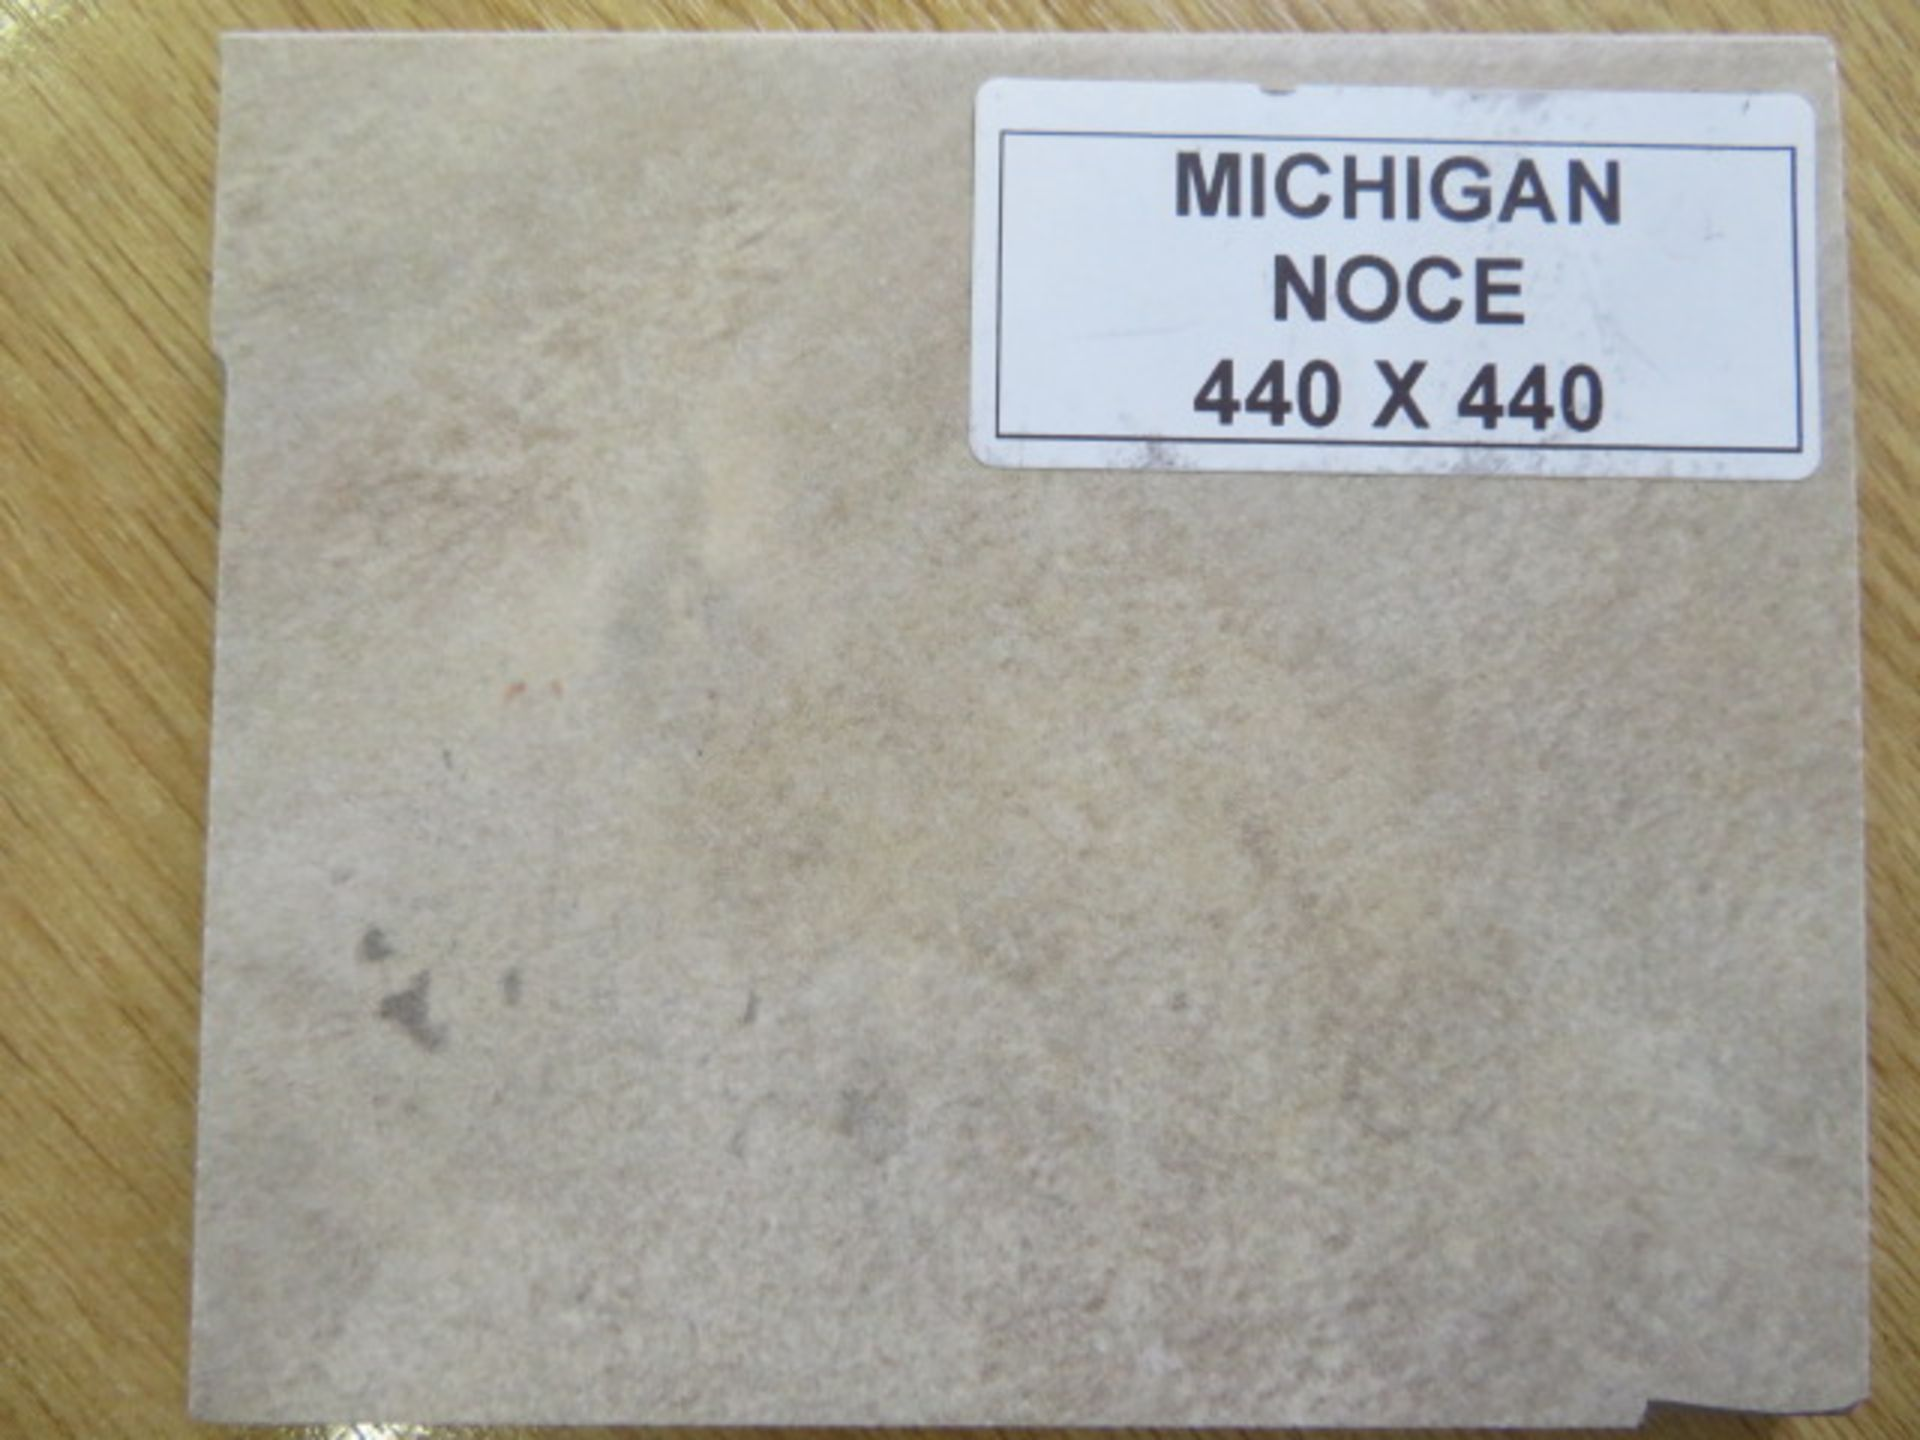 New 6 Square Meters Of Michigan Noce Matte Wall And Floor Tiles. 440X440Mm Per Tile, 8Mm Thick. - Image 3 of 3